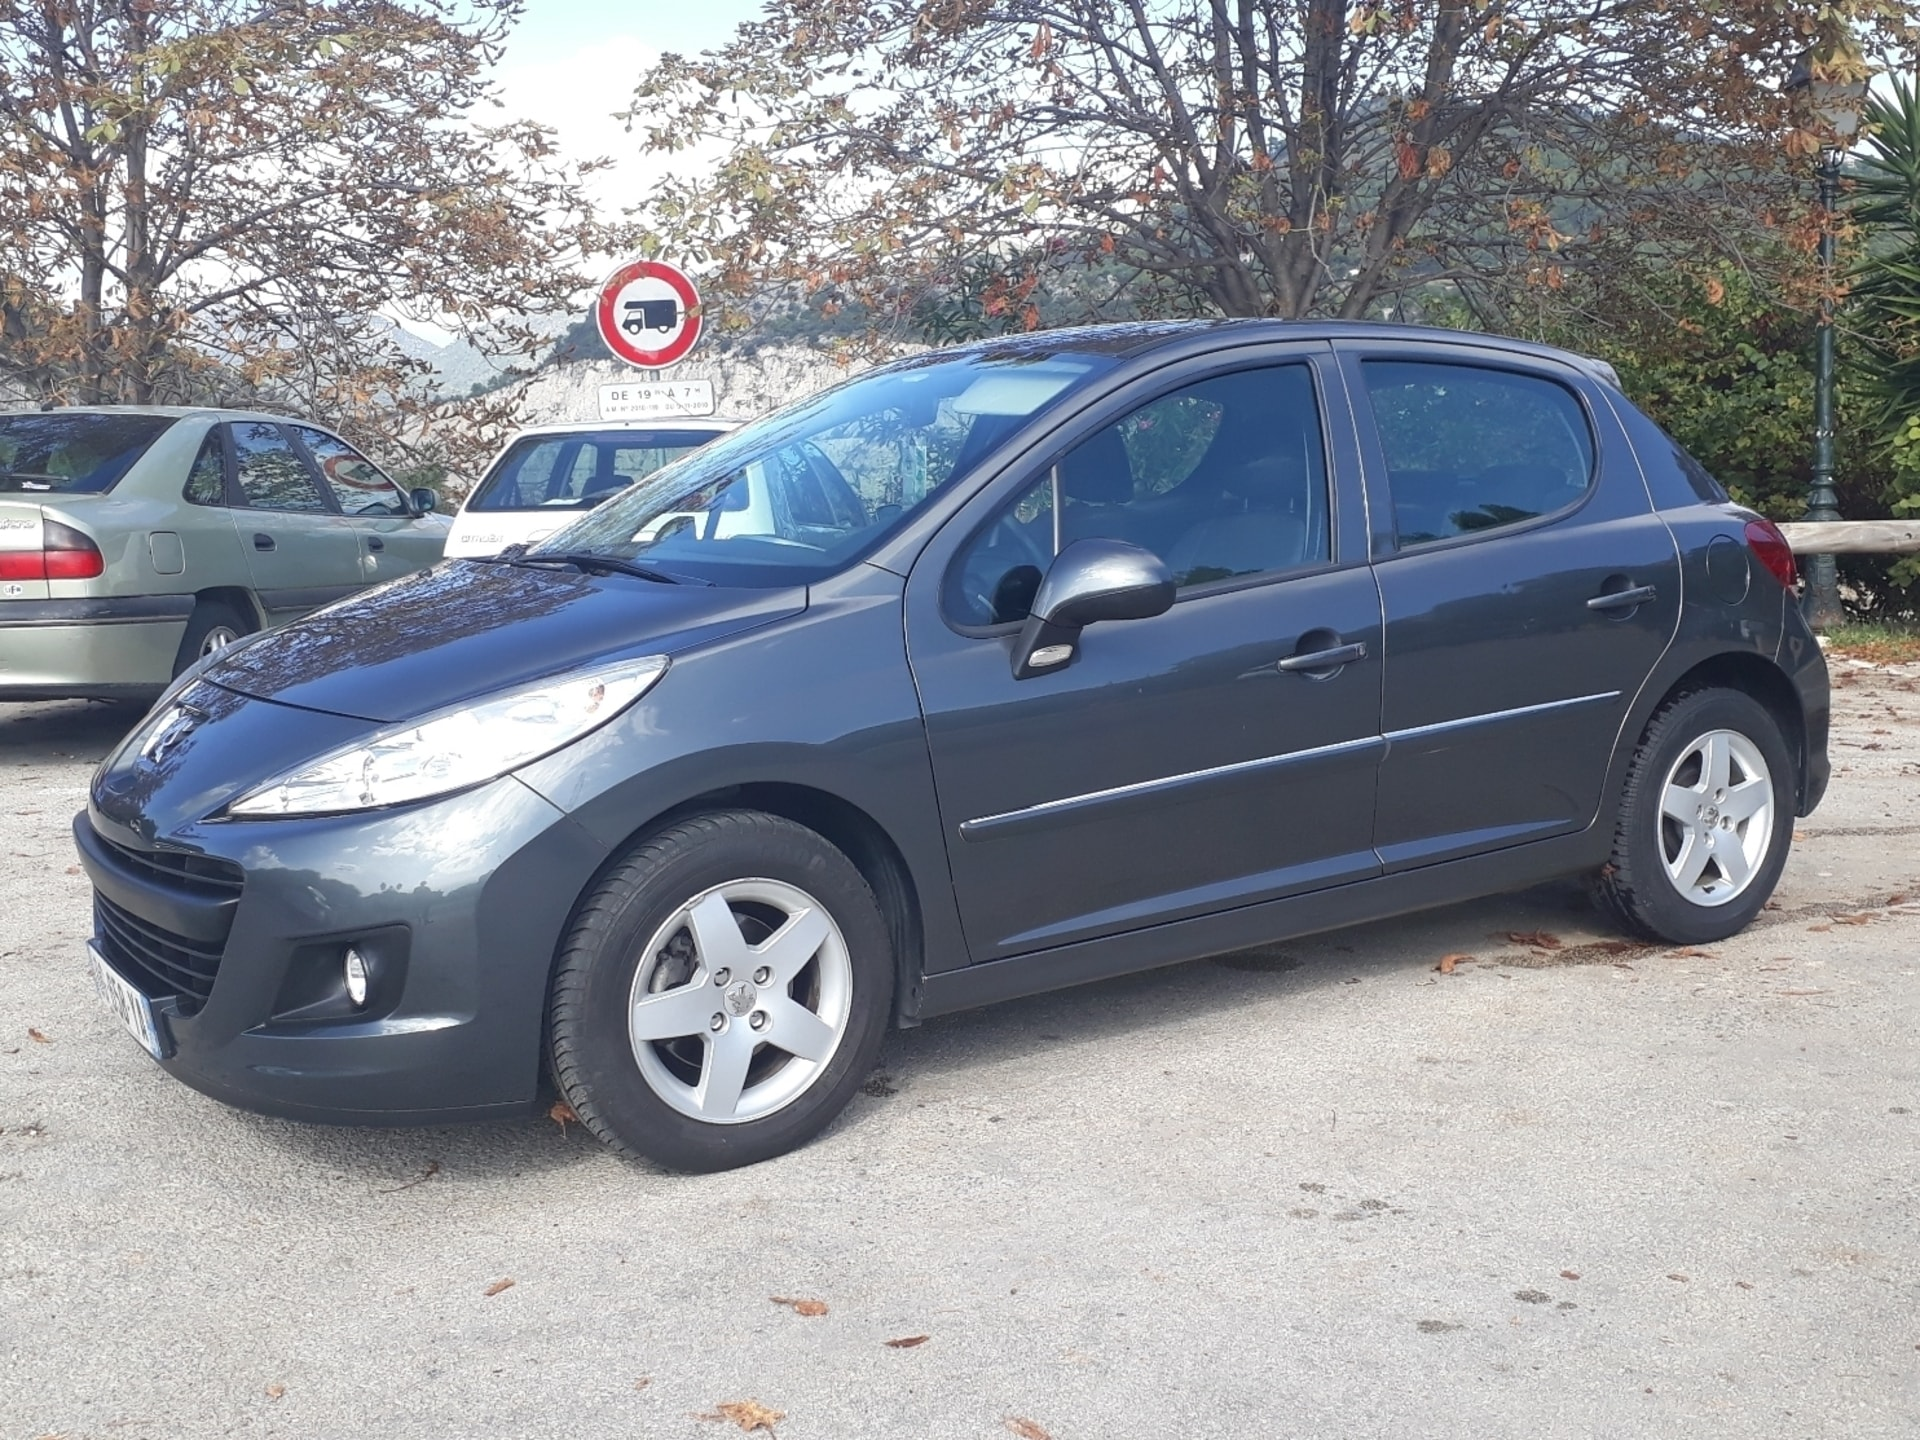 PEUGEOT 207 PLUS 1.4 HDI 70 BLUE-LION - Carverntura